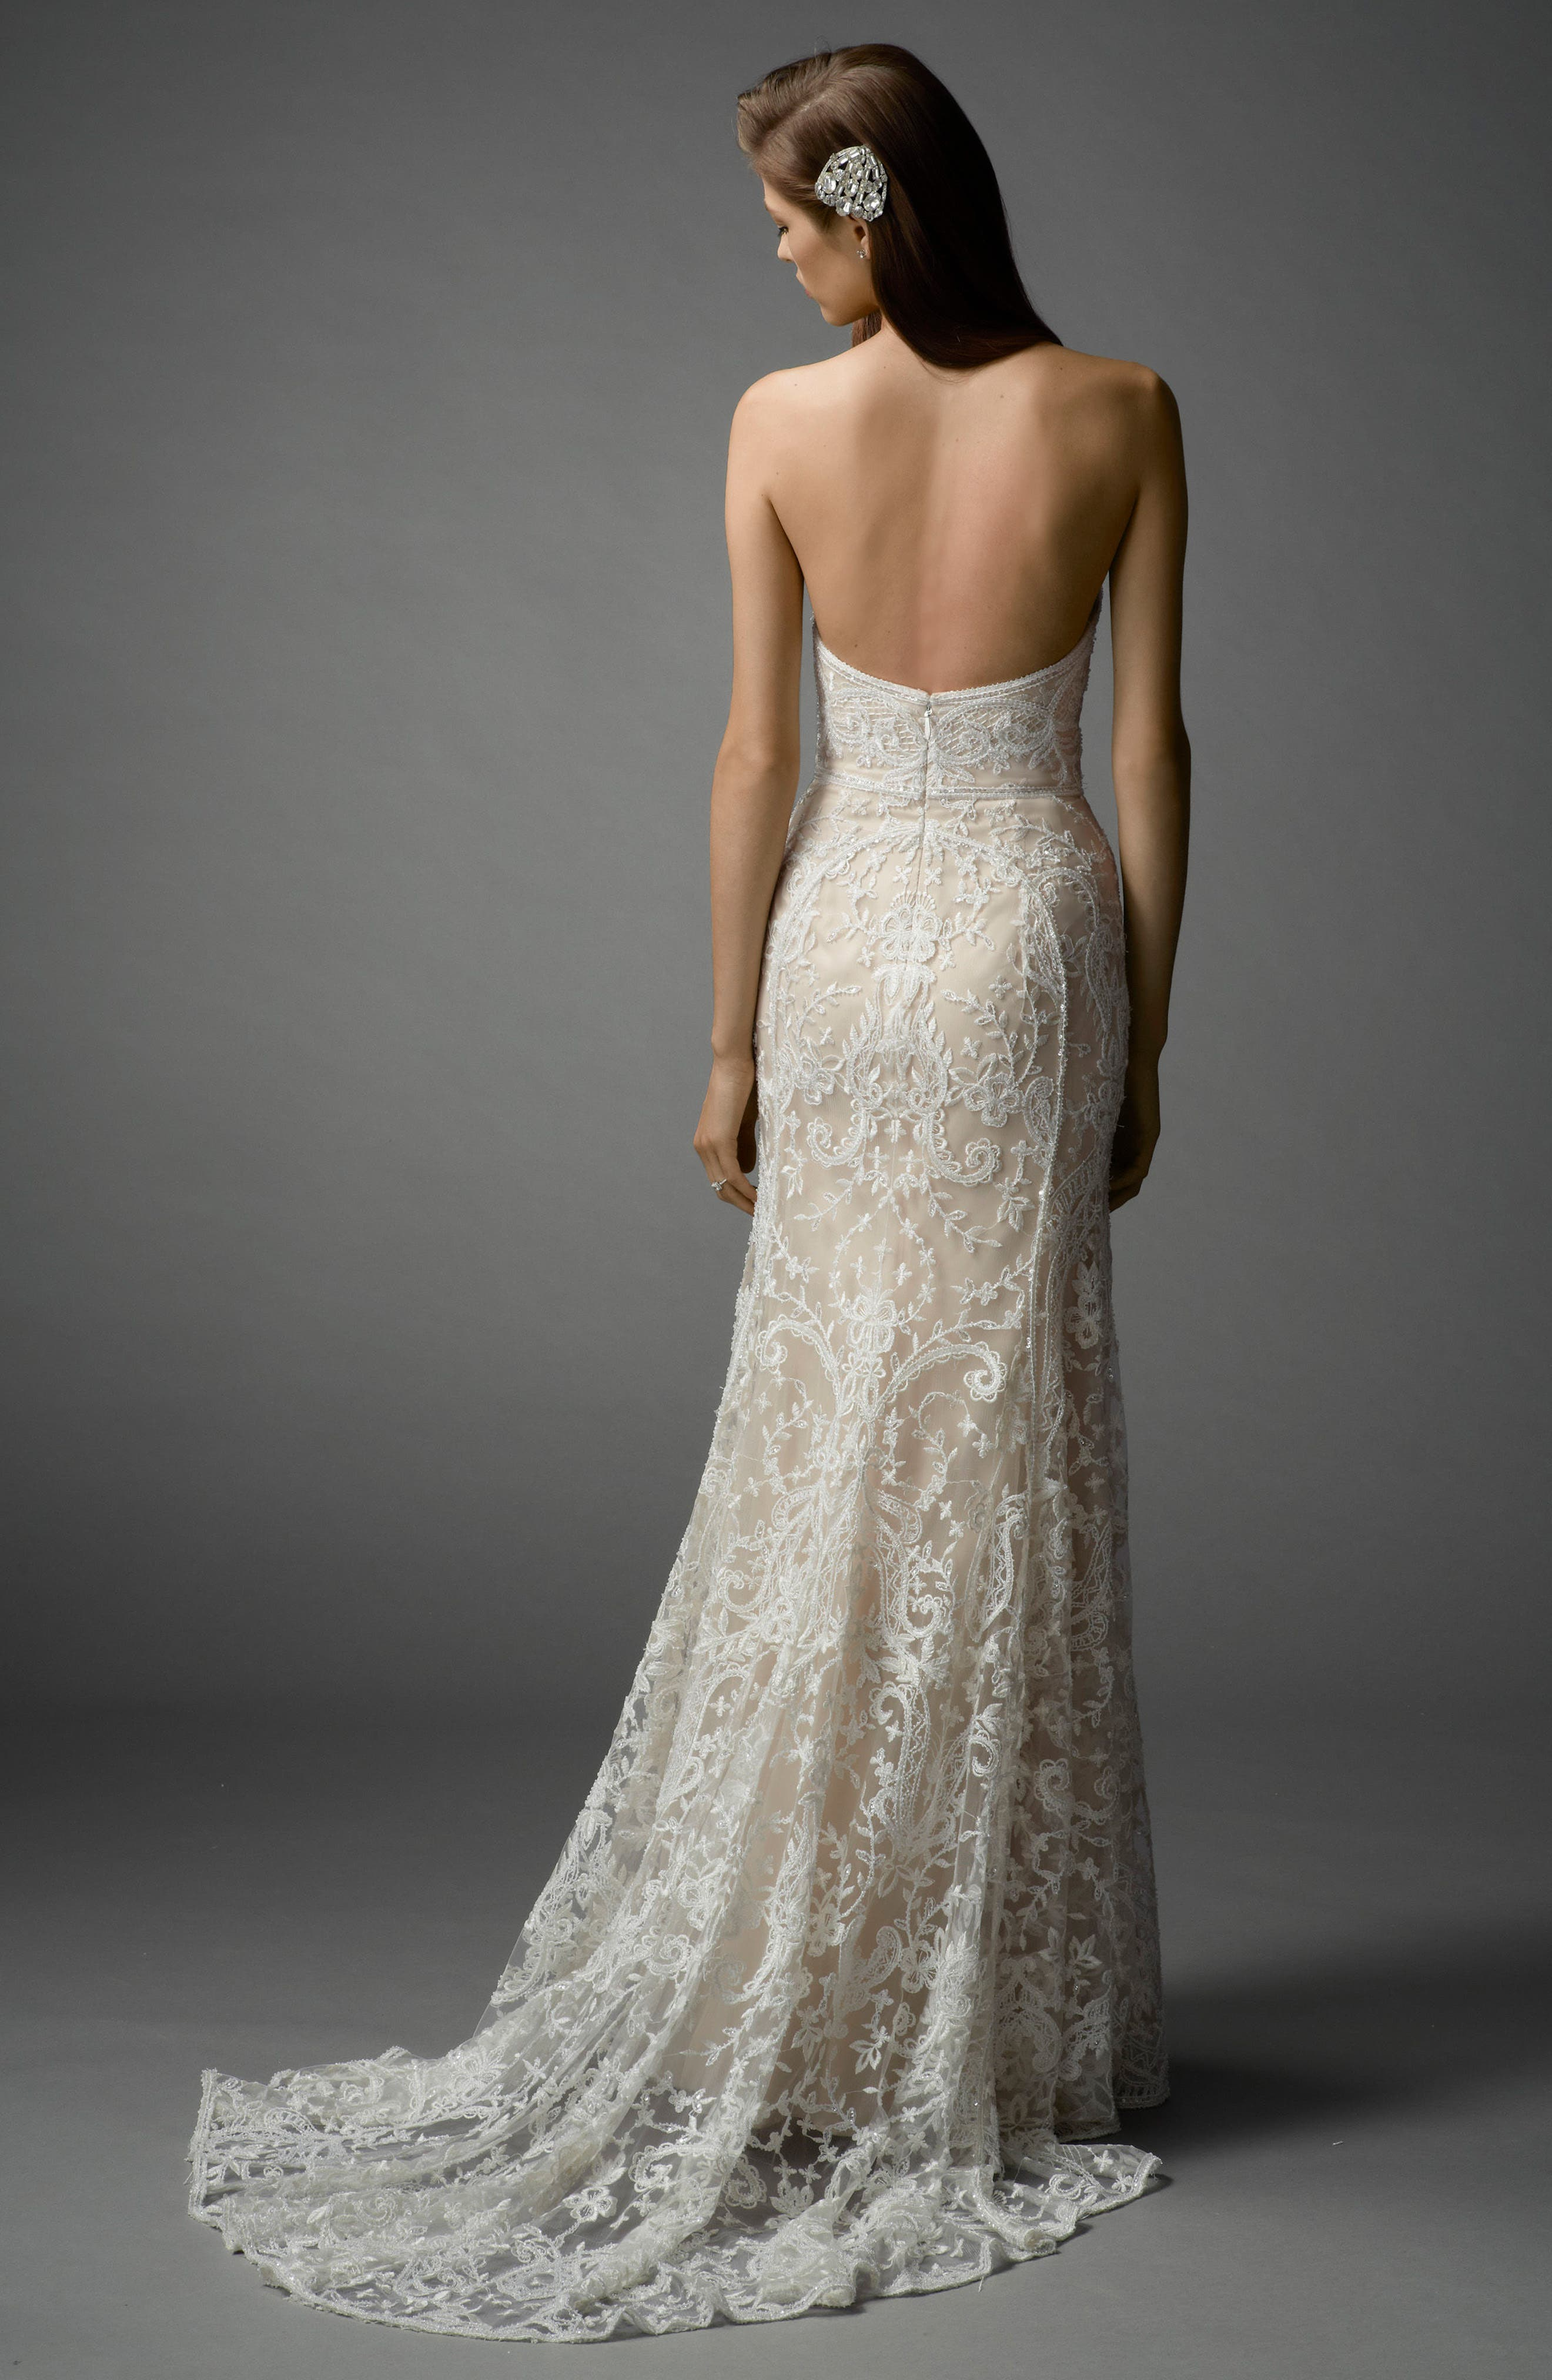 Nyra Embroidered Strapless A-Line Gown,                             Alternate thumbnail 2, color,                             Ivory/Almond